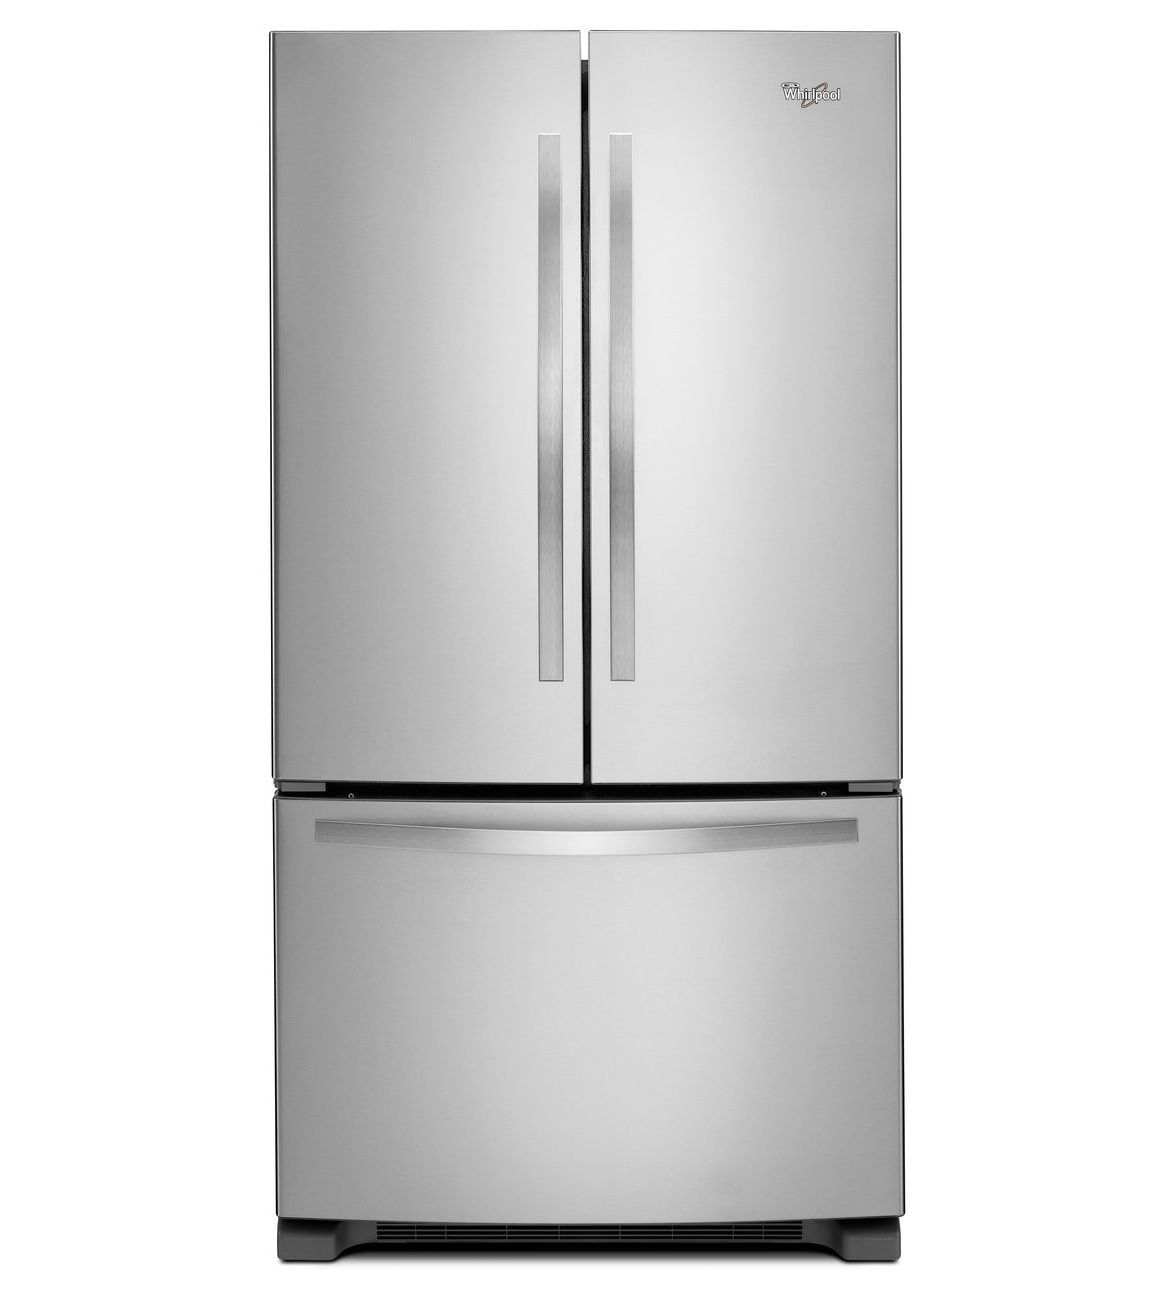 Good Fit: 33 Inch Wide French Door Refrigerator With Accu Chill™ System